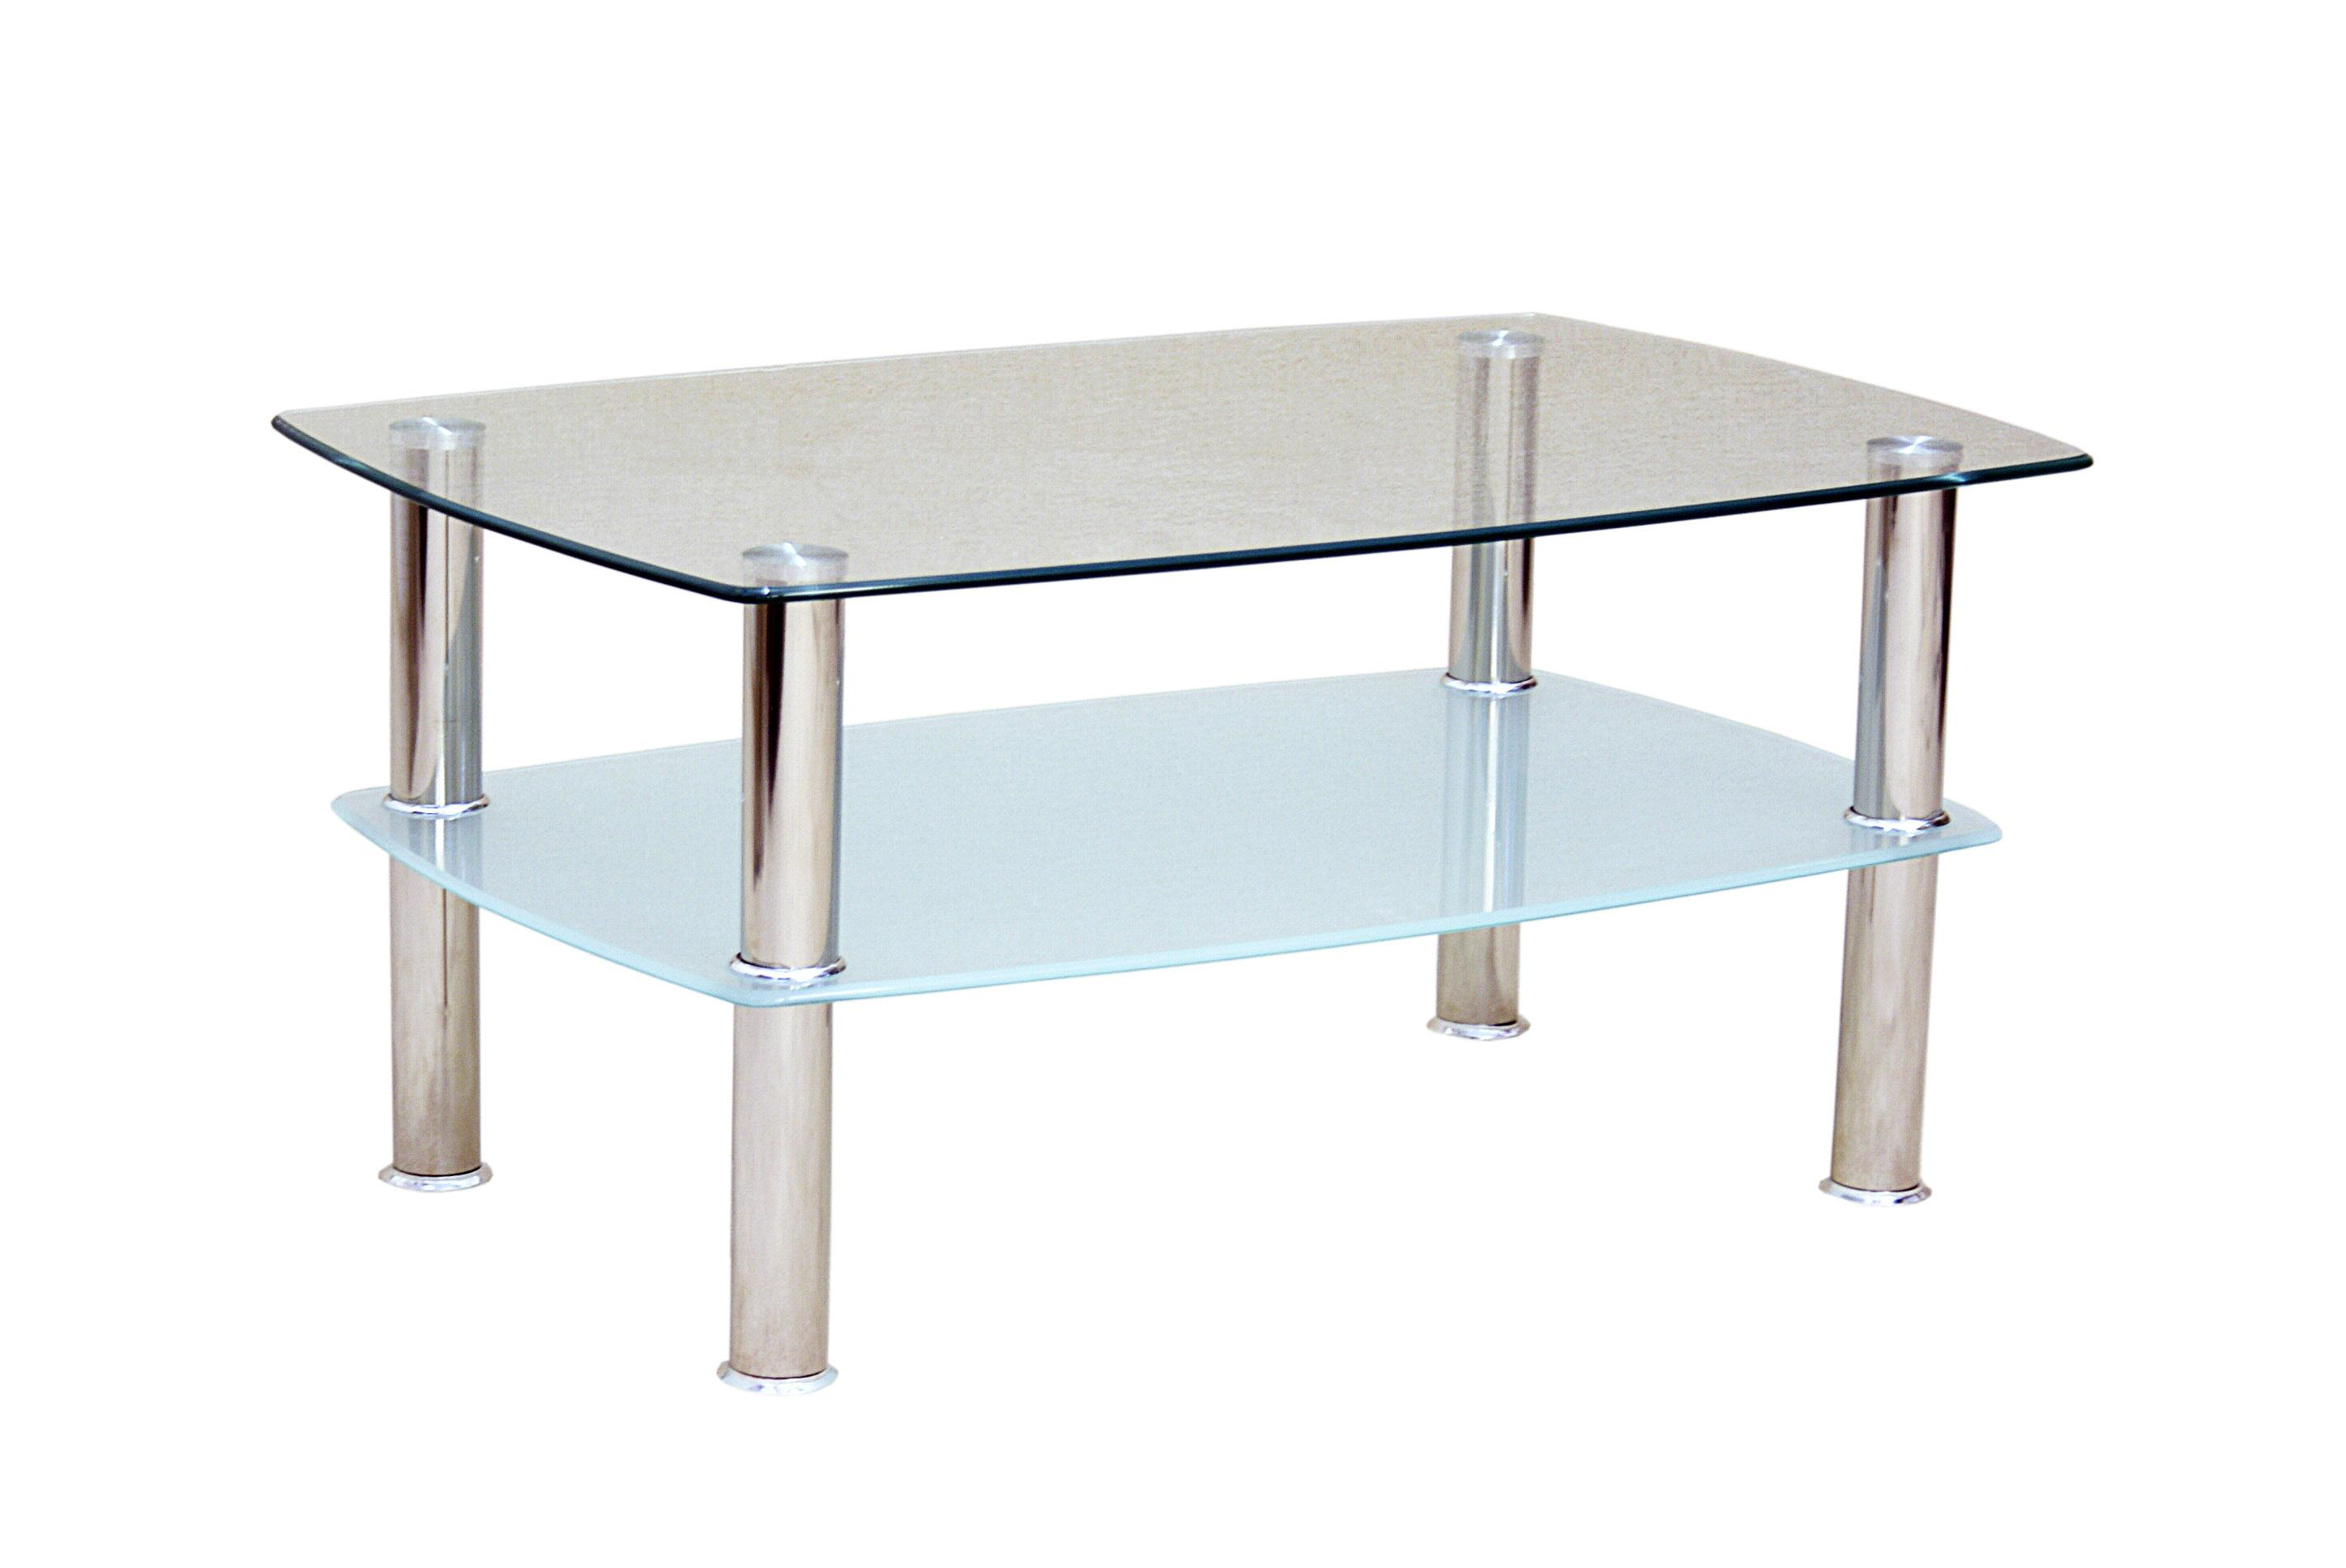 modern glass coffee table designs photo - 6